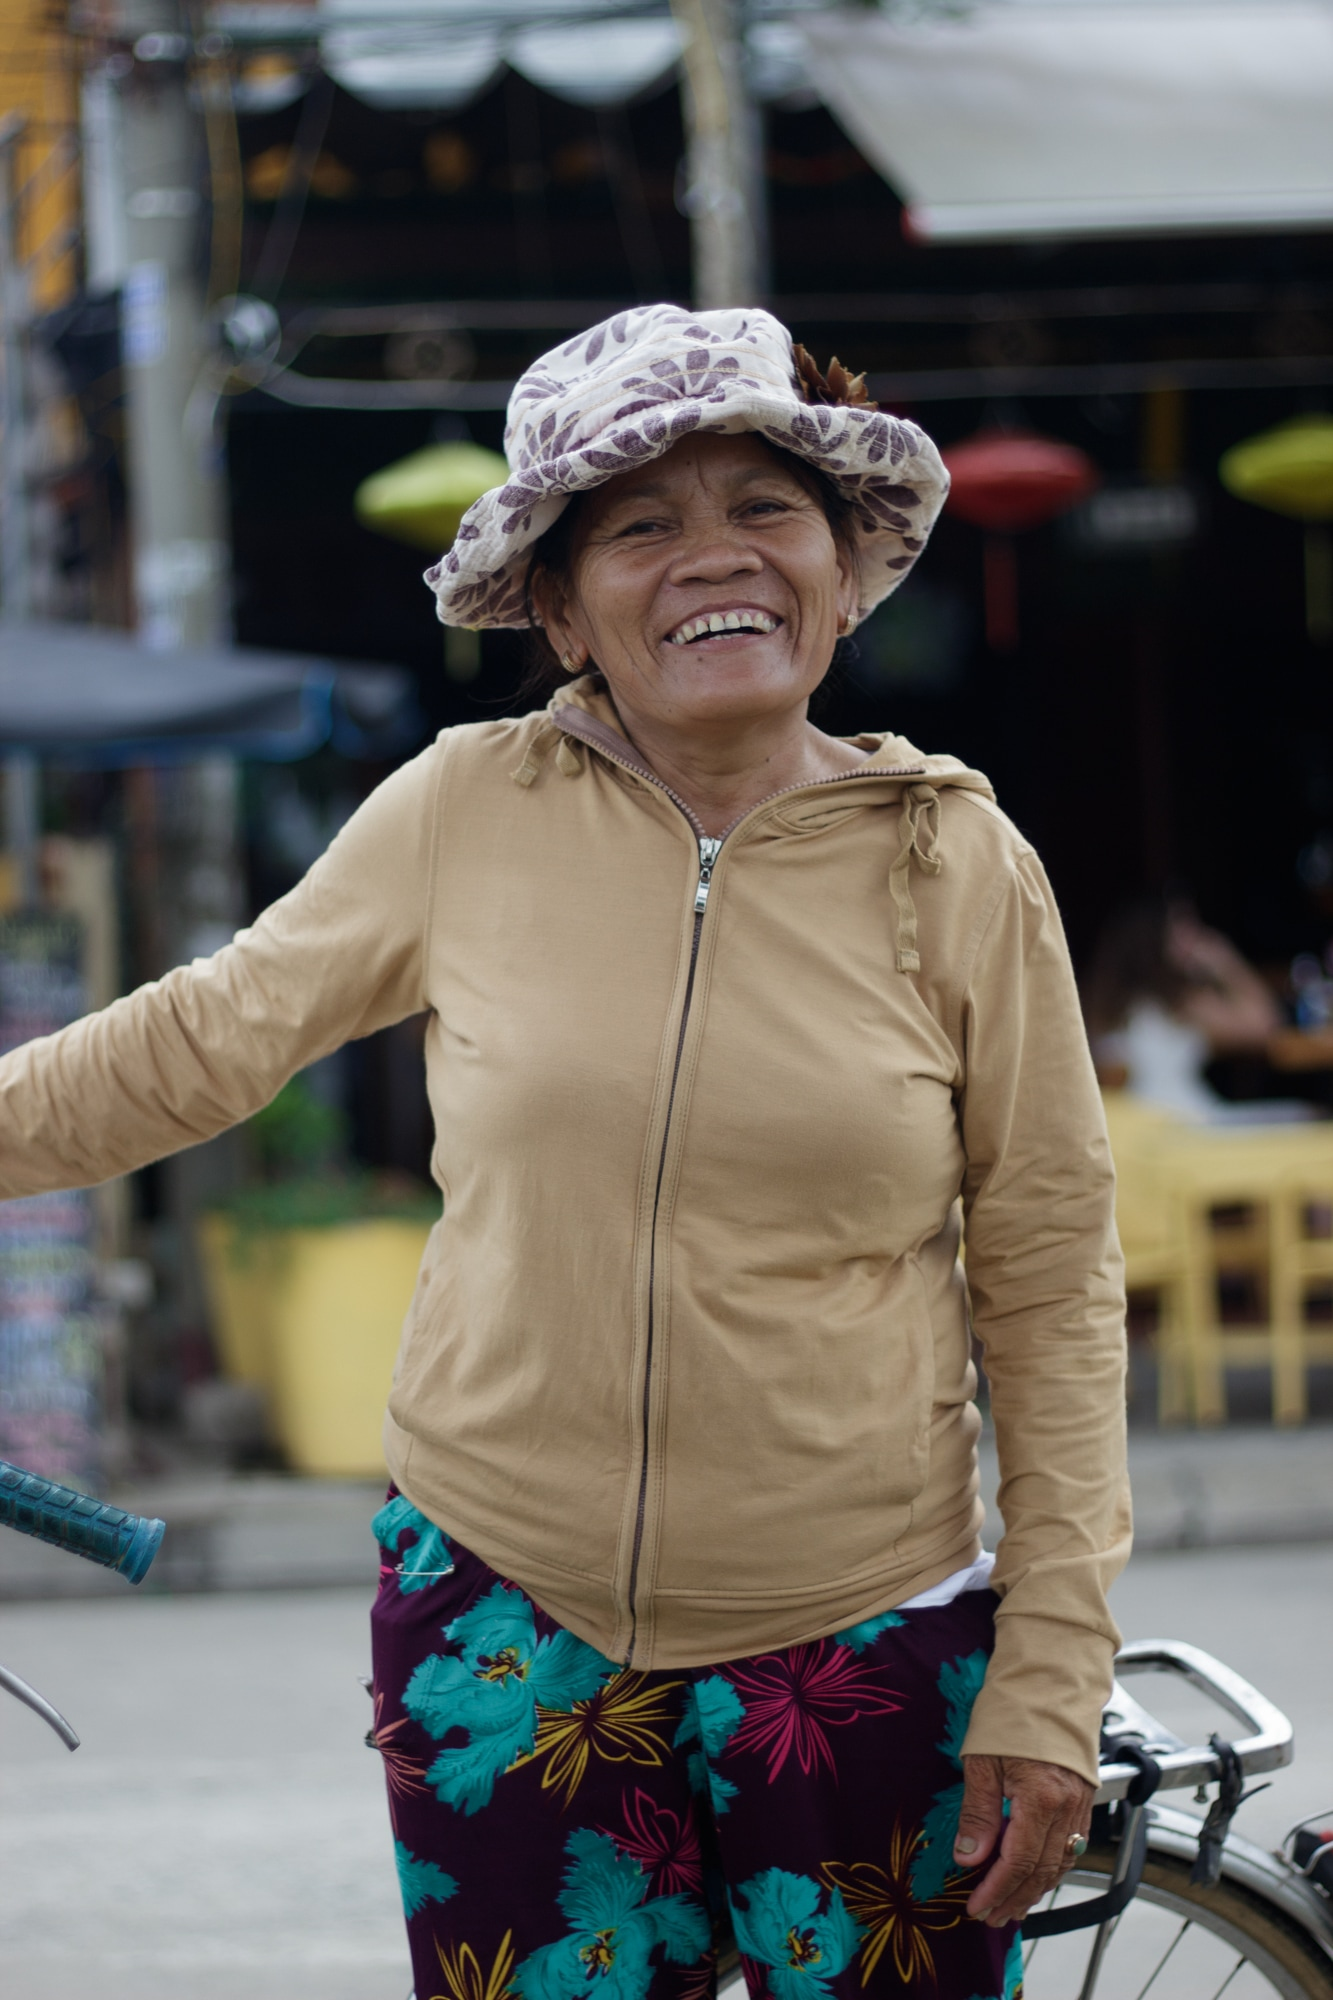 A woman in Hoi An, Vietnam smiles after she notices the camera.